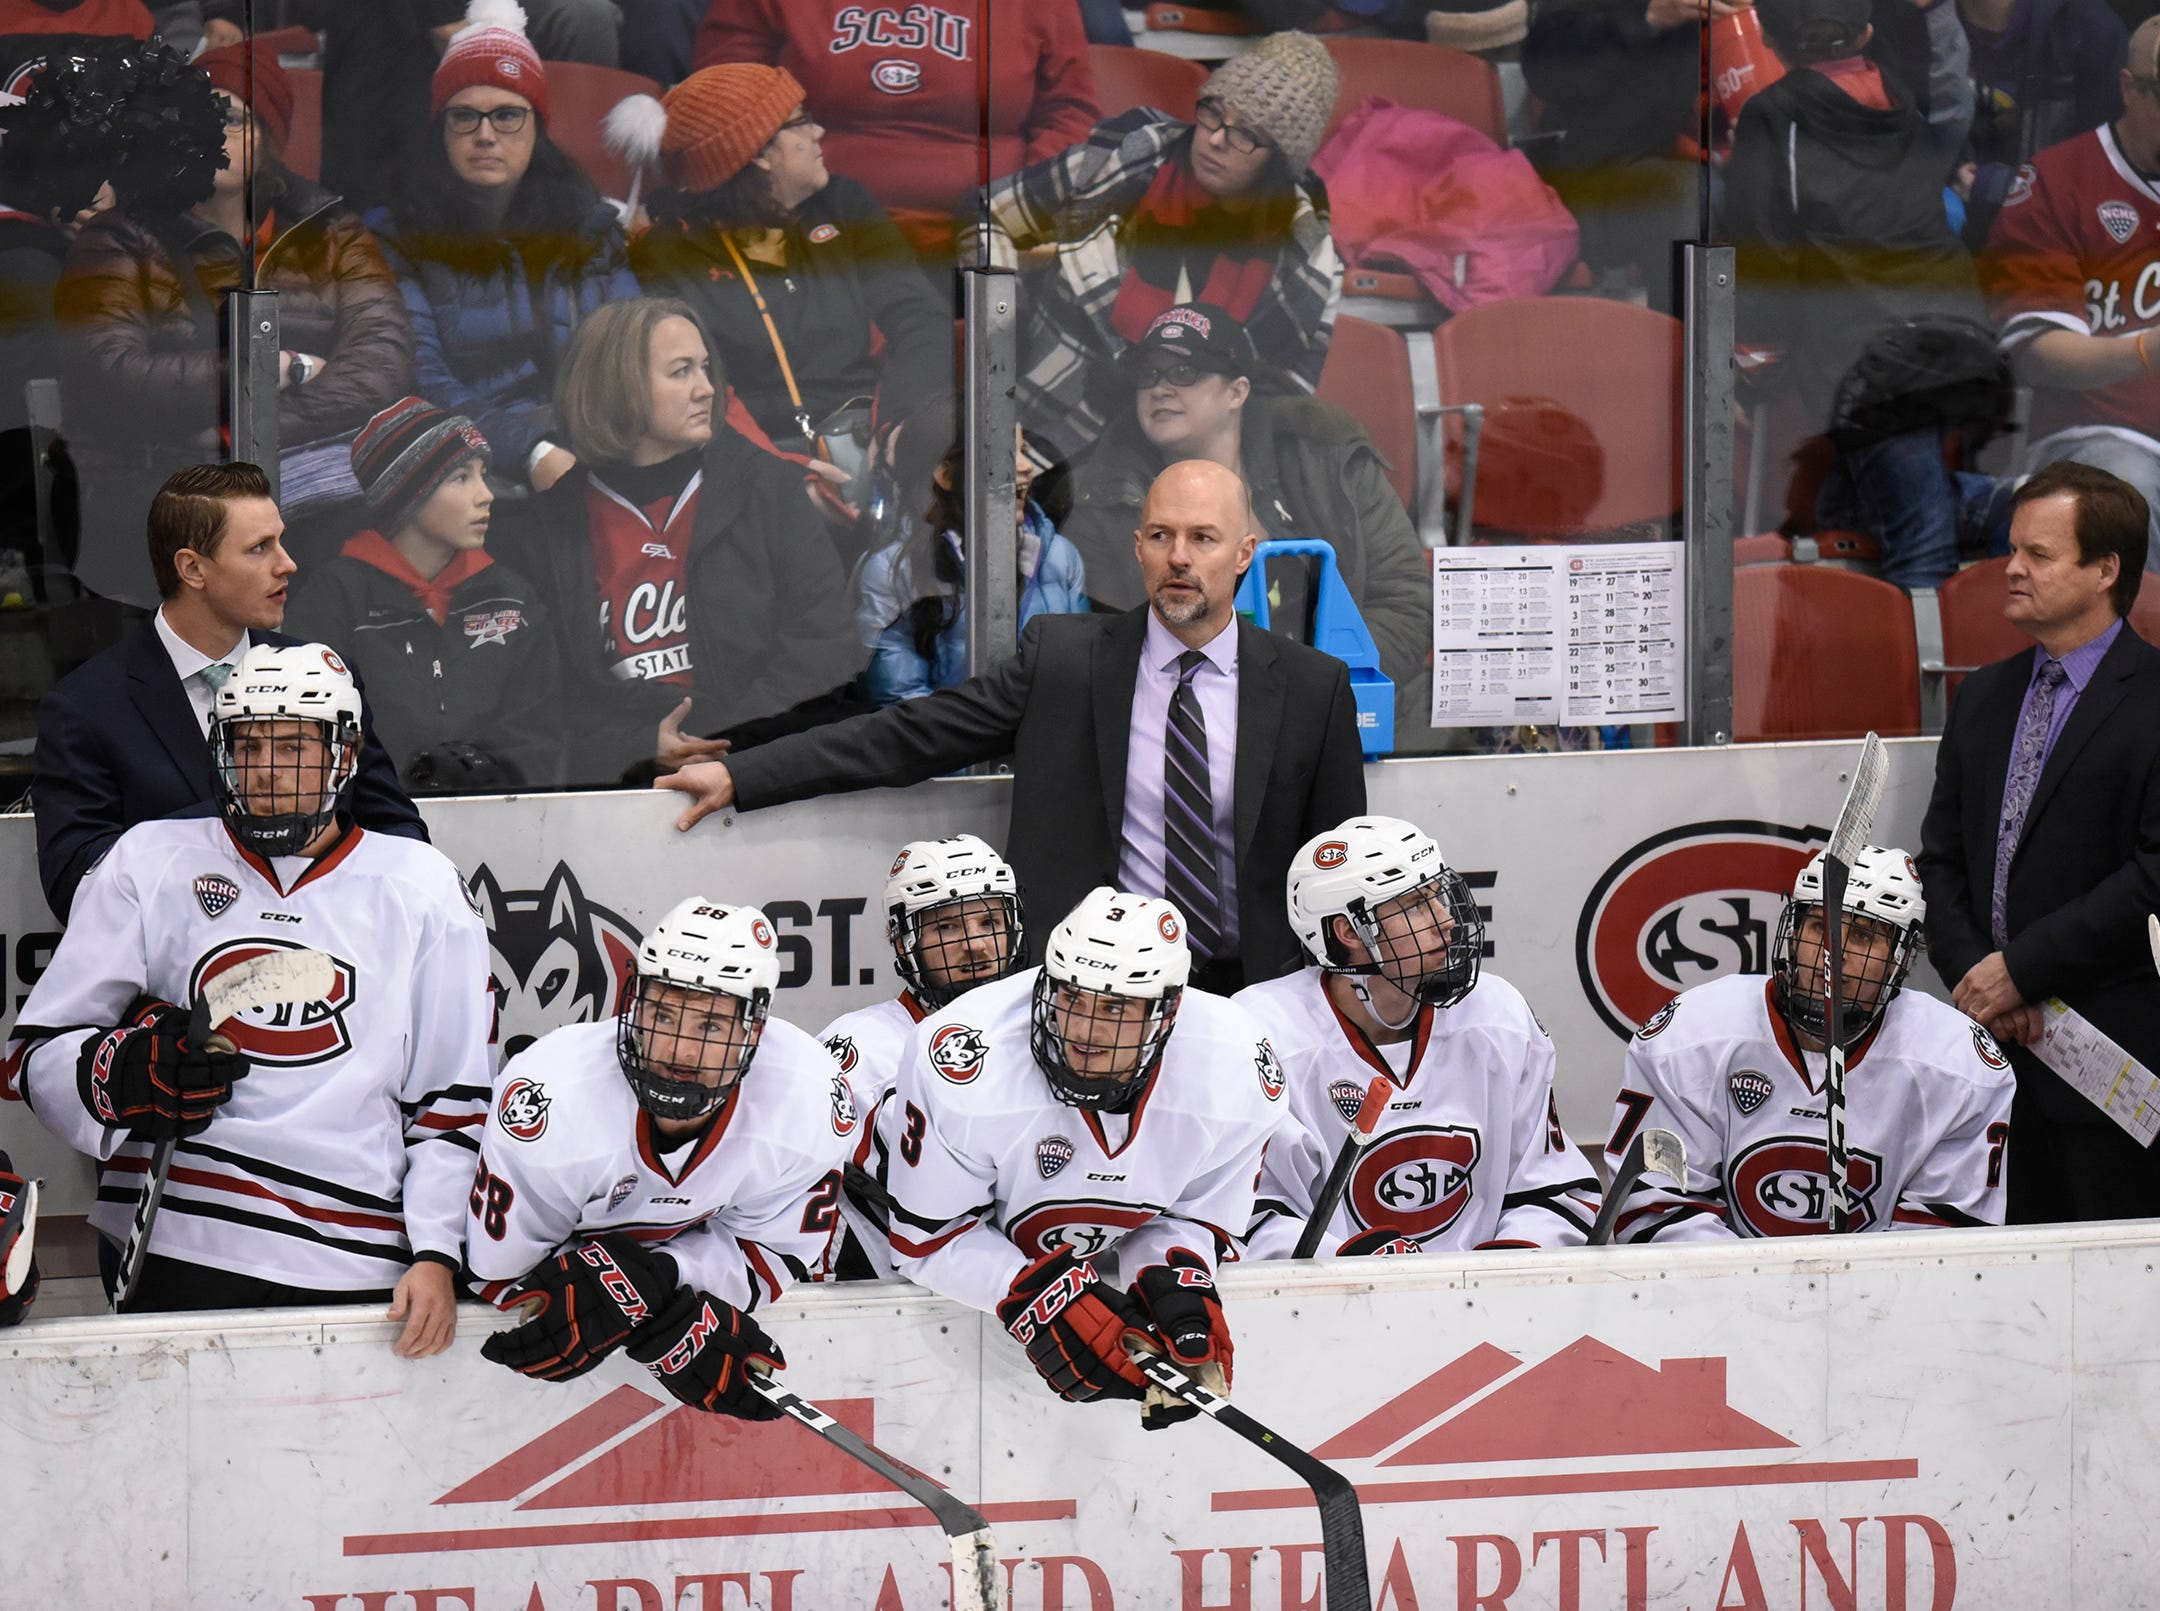 St. Cloud State head coach Brett Larson watches the action during the first period of the Saturday, Nov. 10, game against the University of Denver at the Herb Brooks National Hockey Center in St. Cloud.